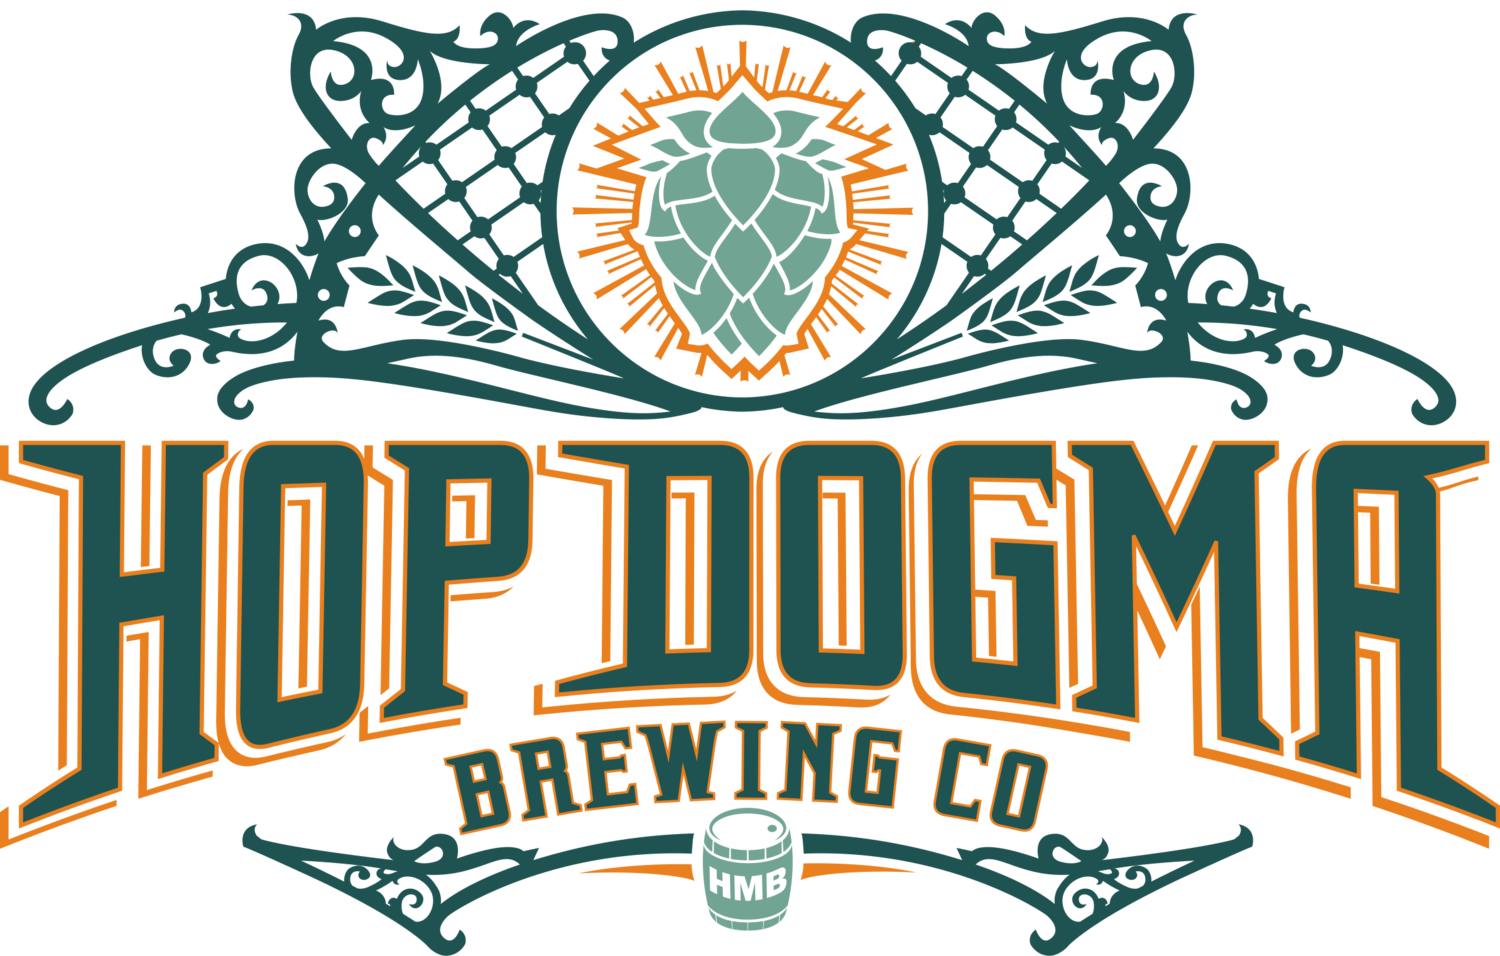 Hop Dogma Brewing Co.